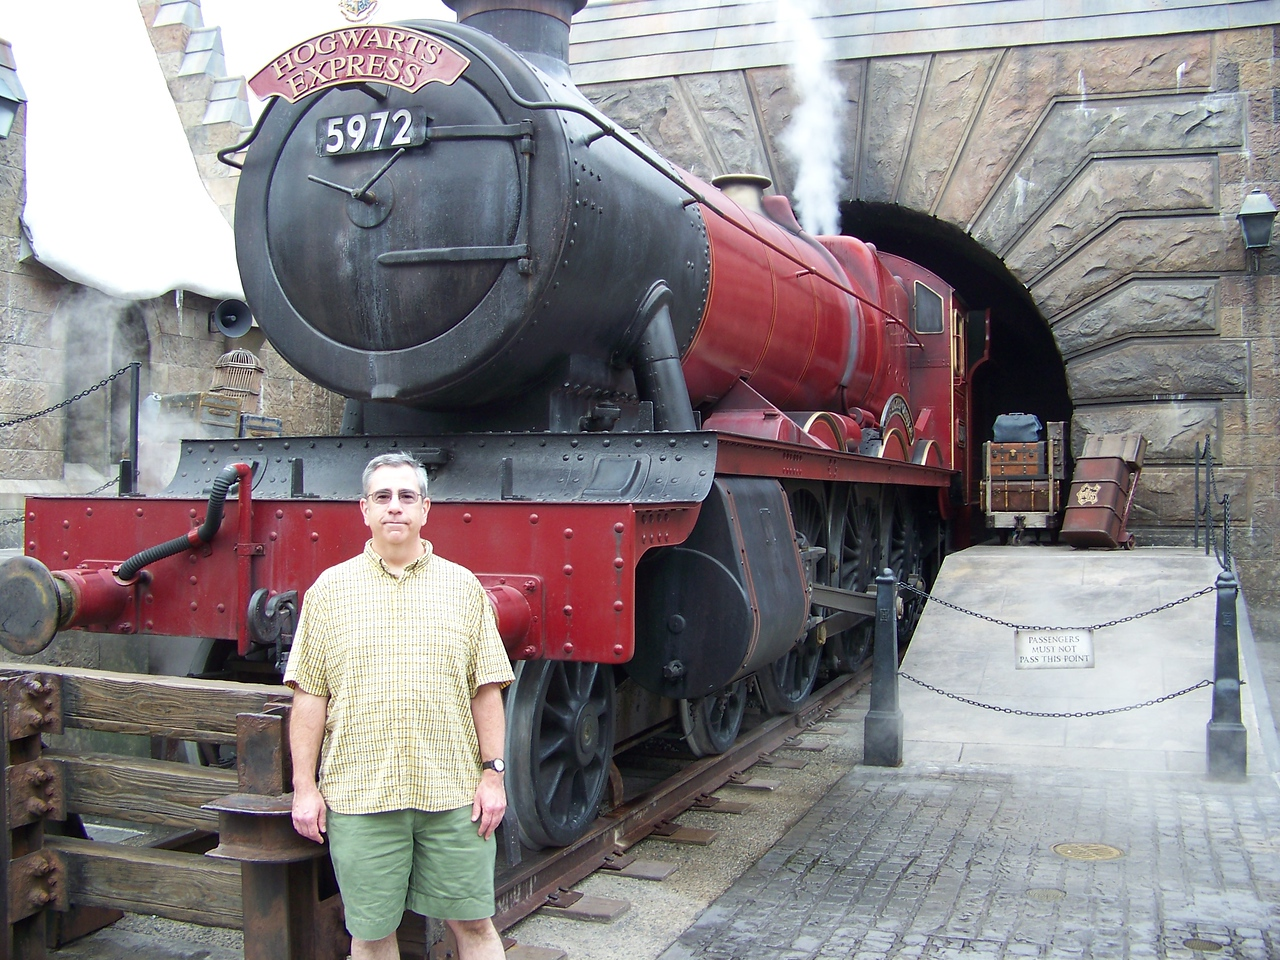 Dave poses with the Hogwarts Express.  The train would occasionally chuff and let off steam, but it's not a ride--just a photo op.<br /> [Universal Islands of Adventure - Wizarding World of Harry Potter]